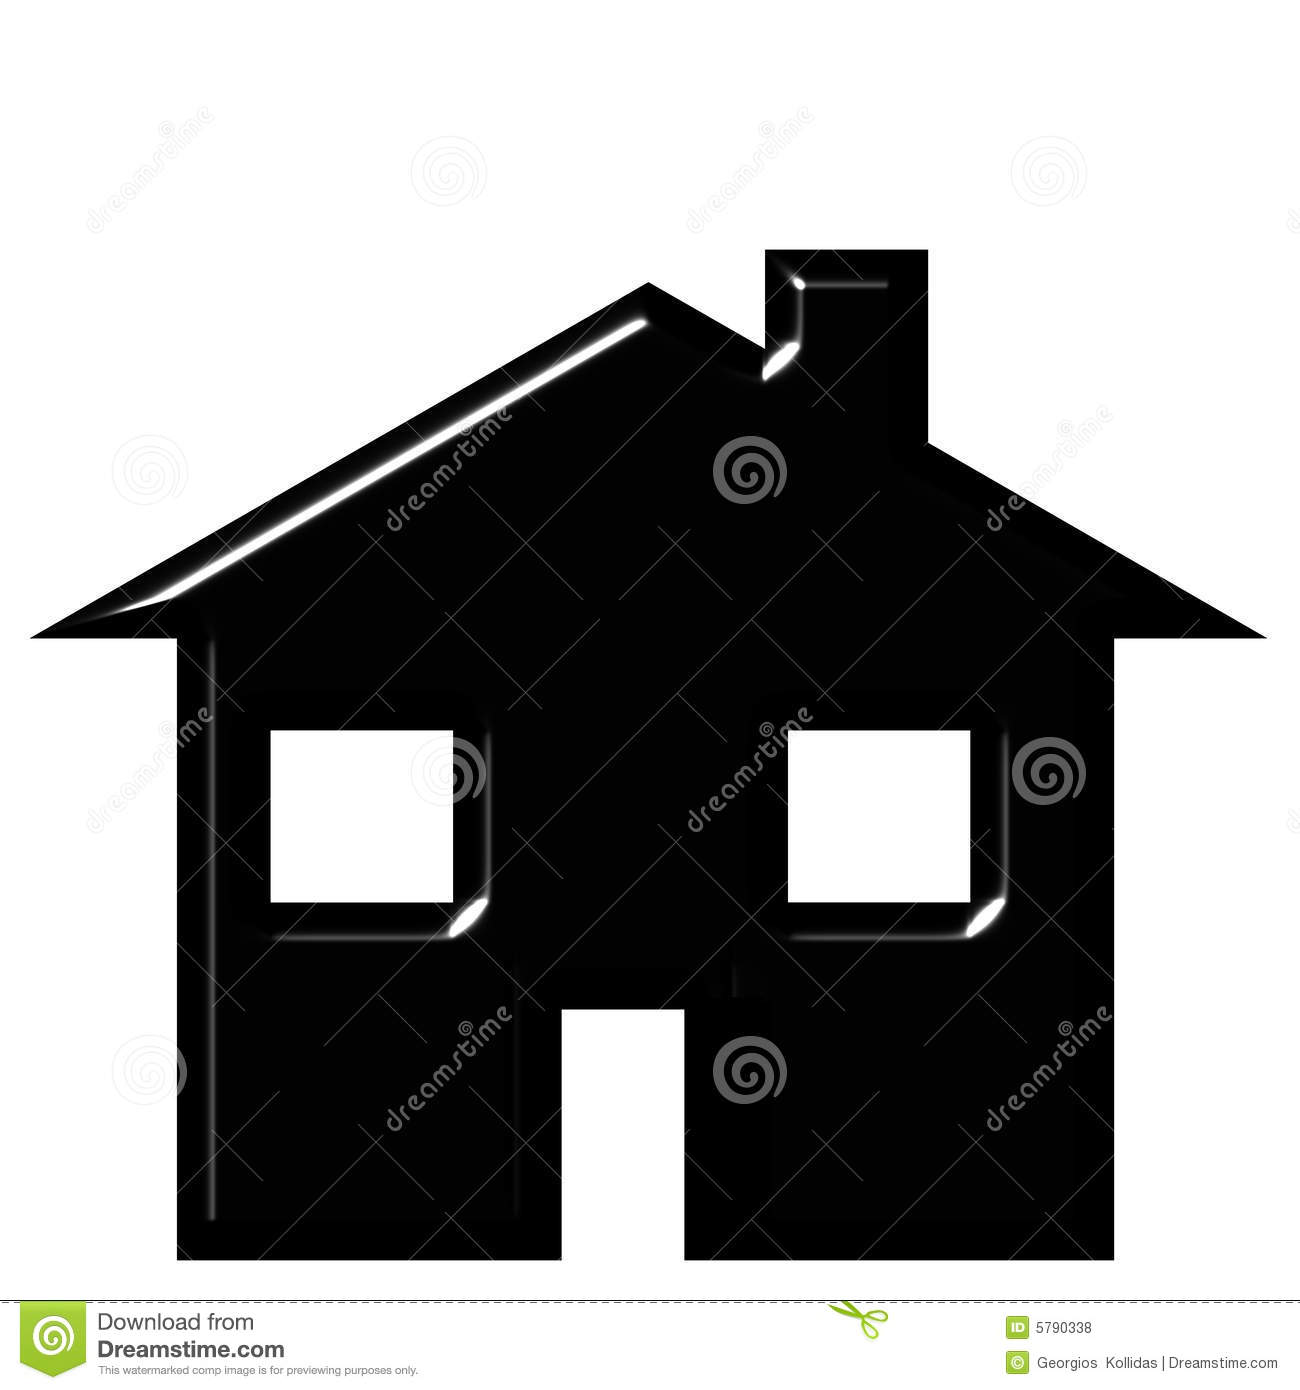 3D House Silhouette Royalty Free Stock Photos